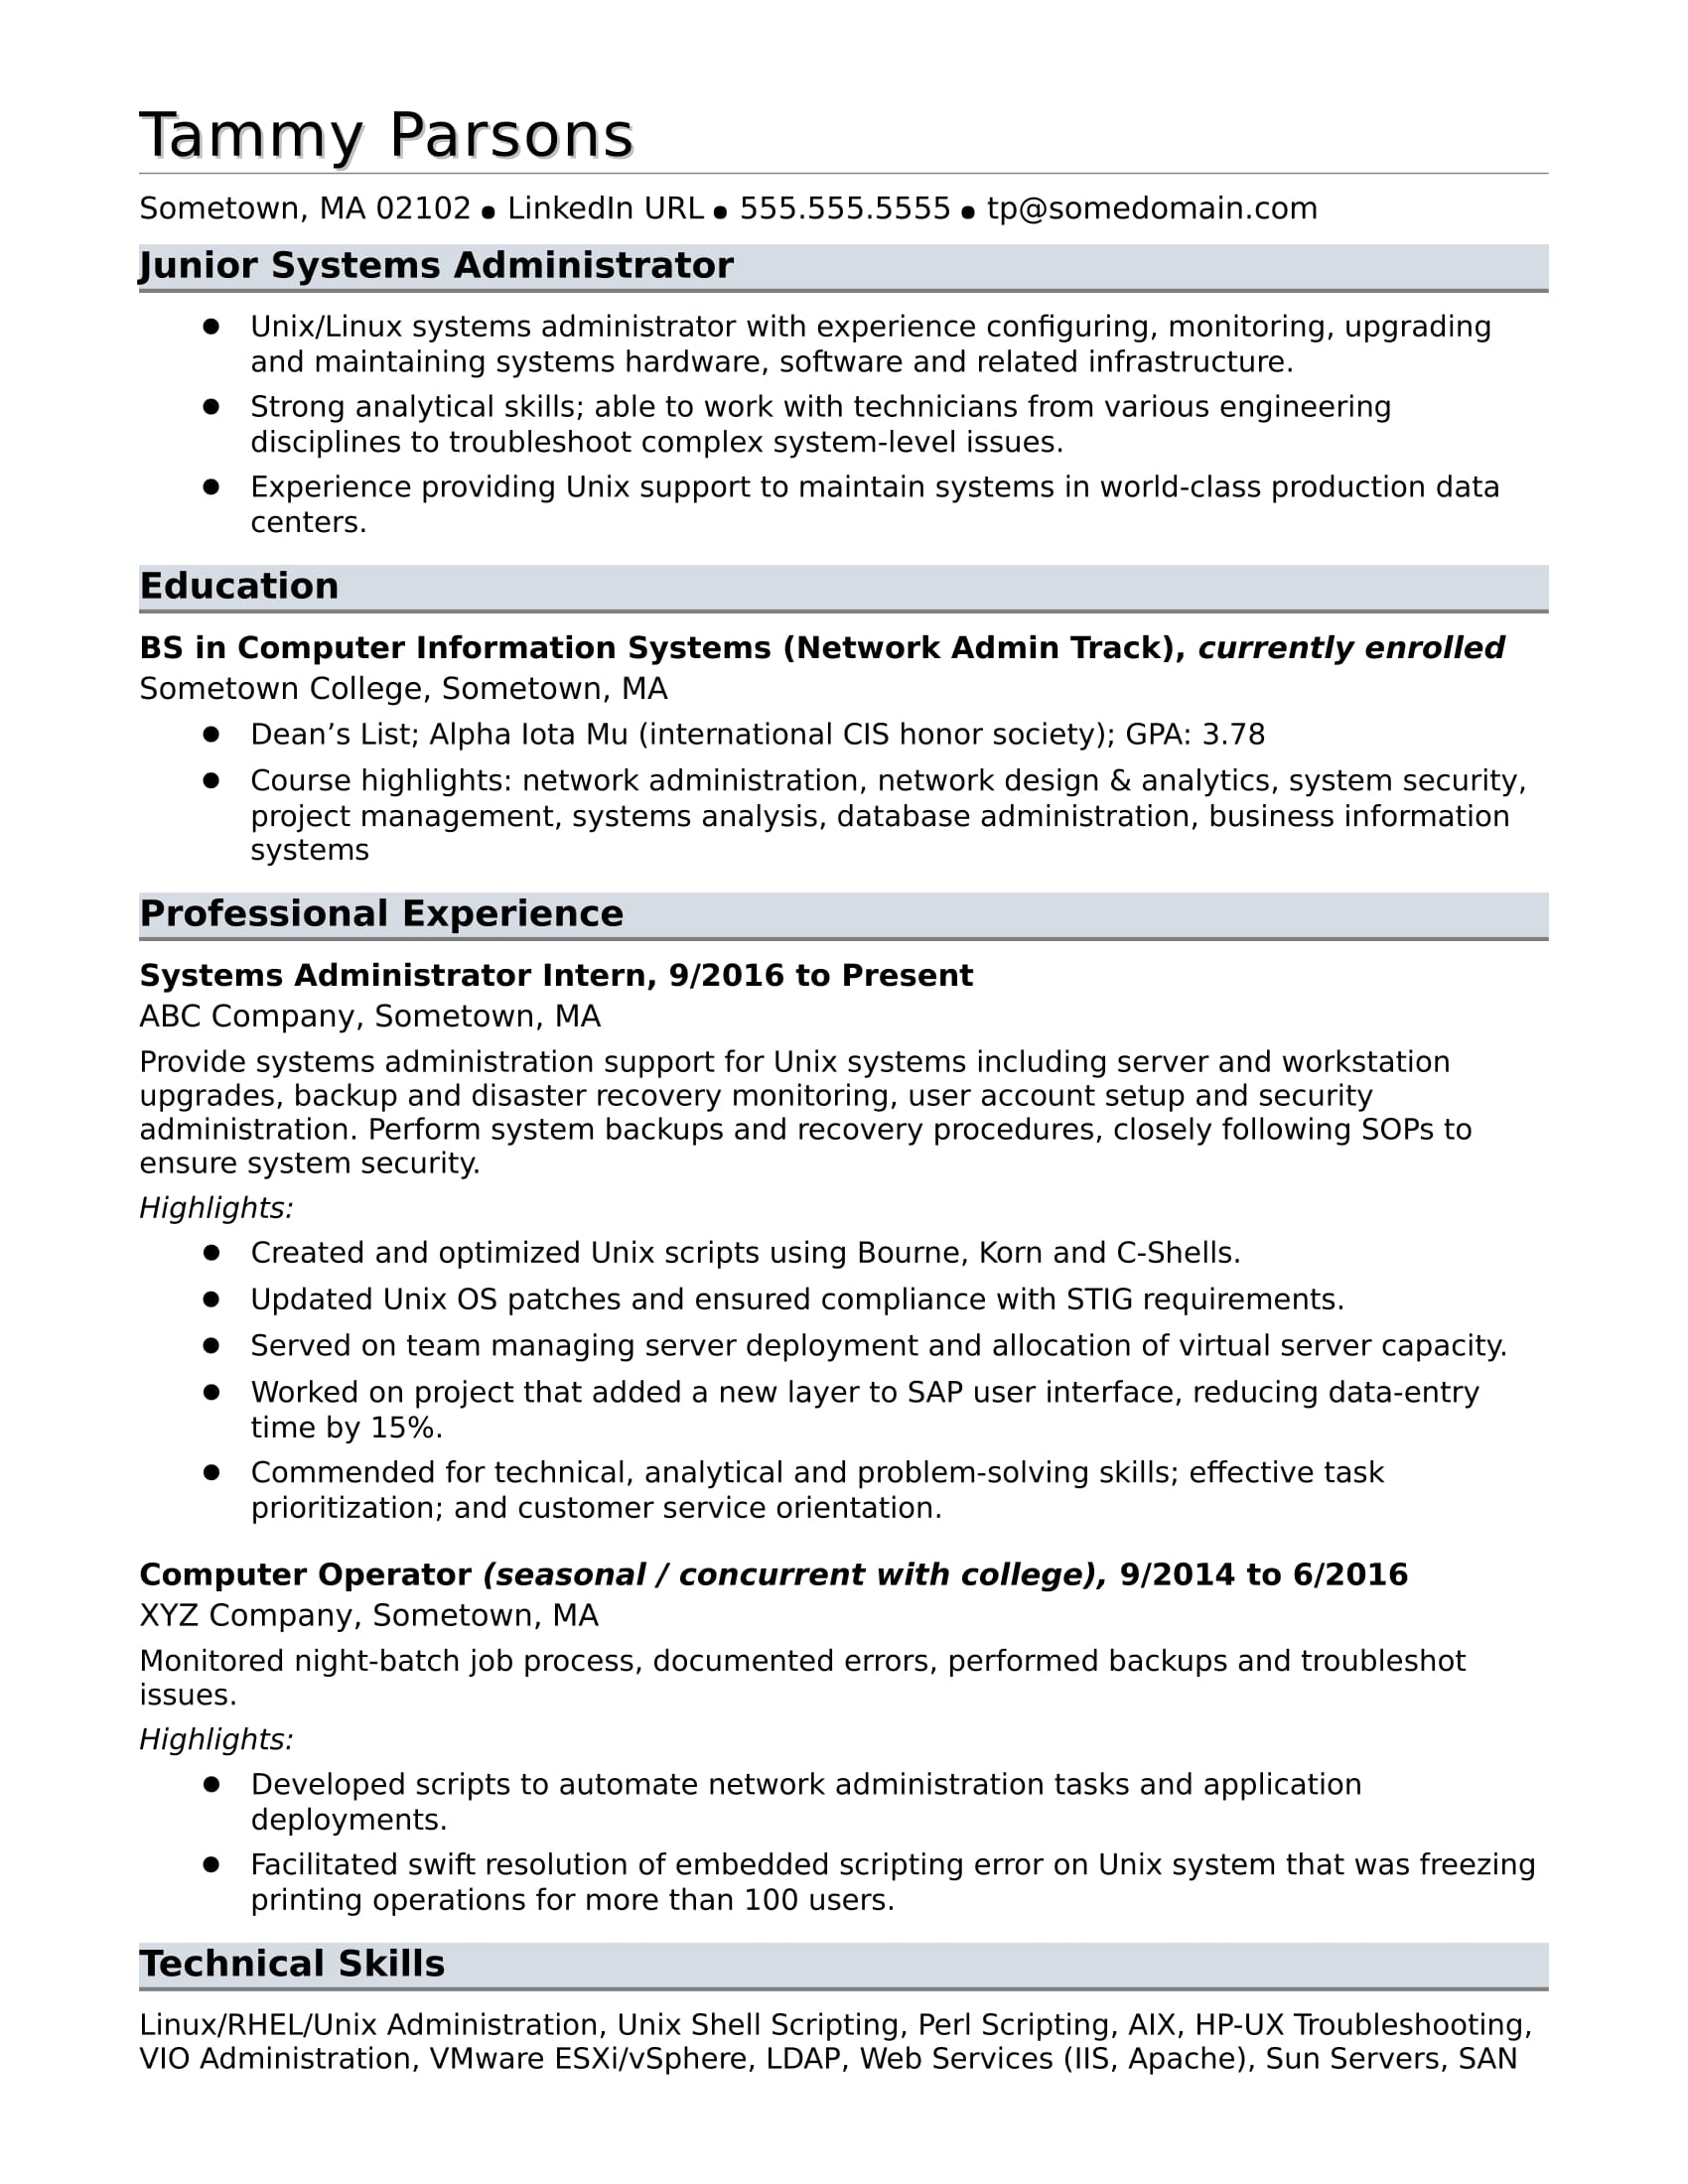 Exceptional Sample Resume For An Entry Level Systems Administrator Intended System Admin Resume